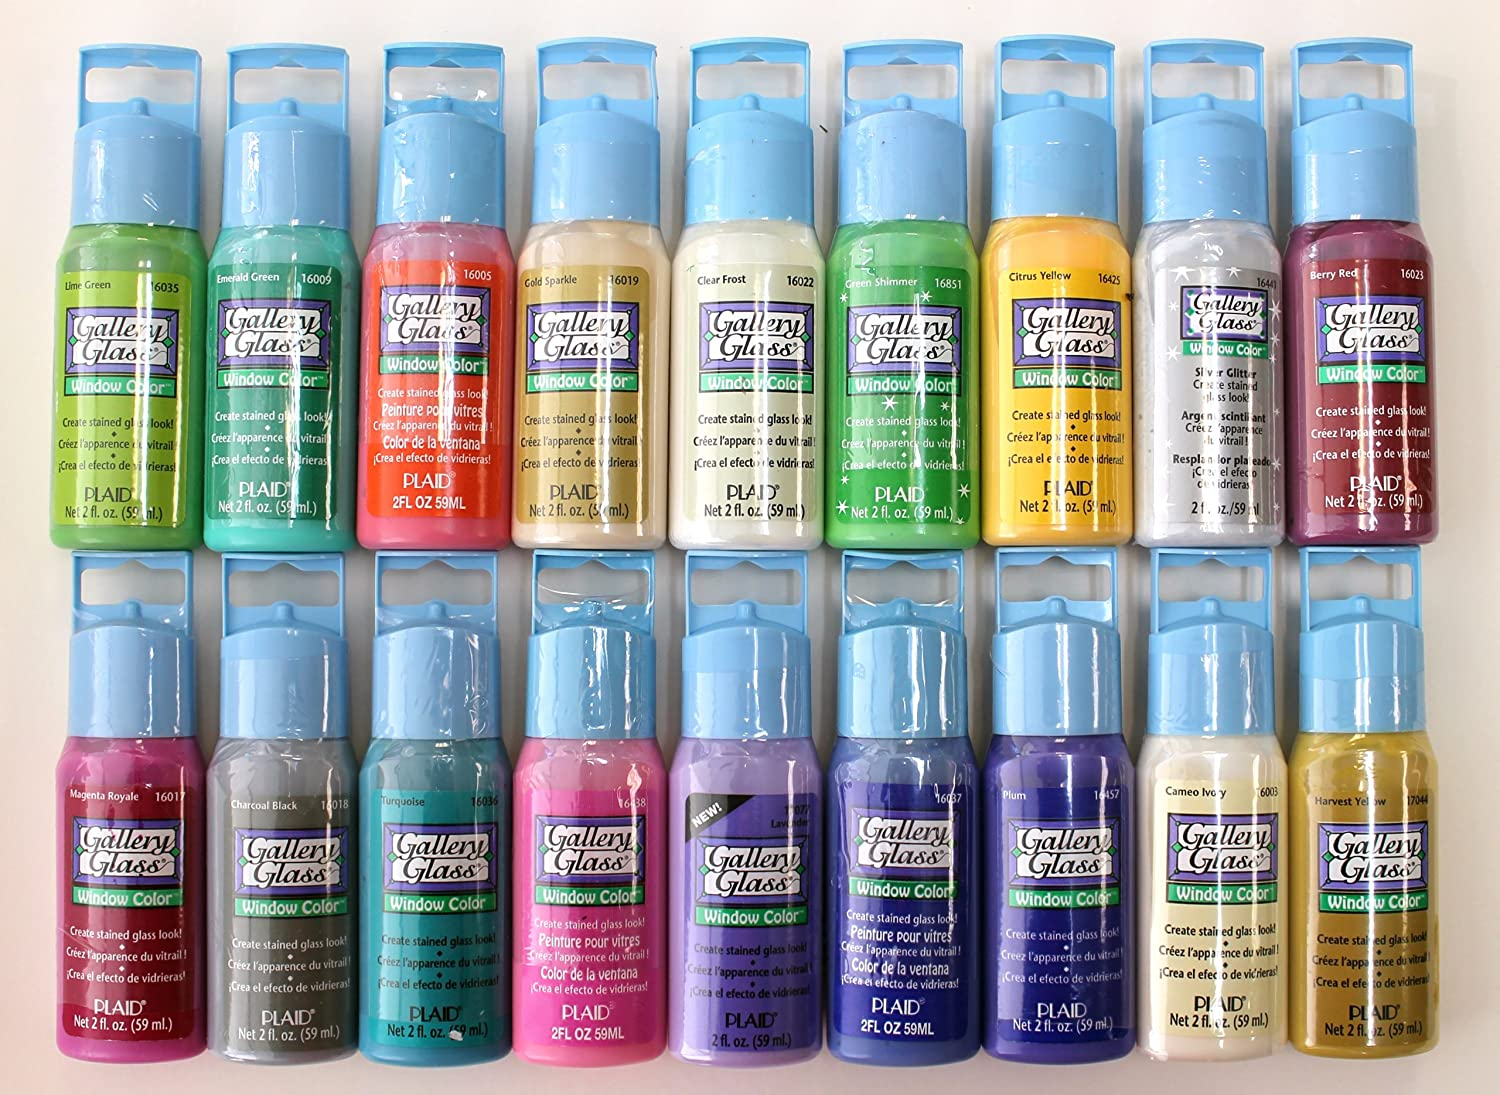 Can I Paint Glass With Acrylic Paint Of Plaid Promoggii Gallery Glass Acrylic Paint 2 Ounce Best